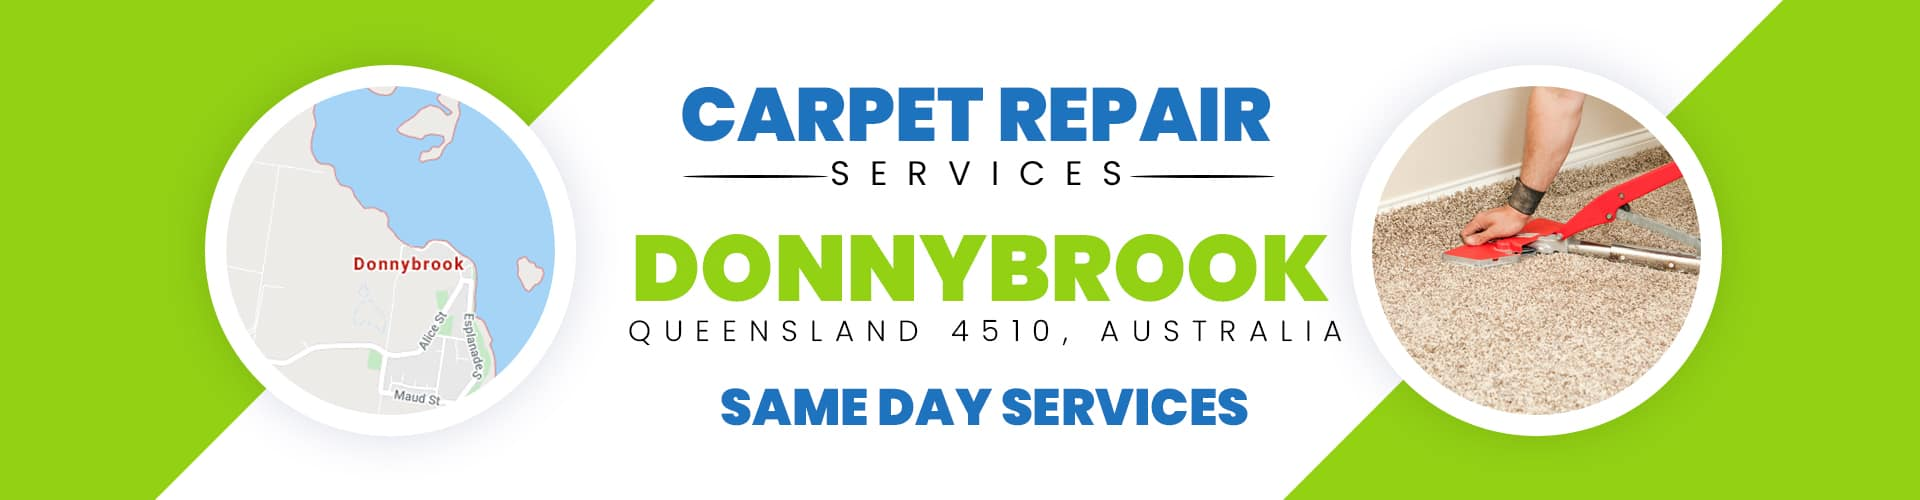 Carpet Repair Donnybrook Qld